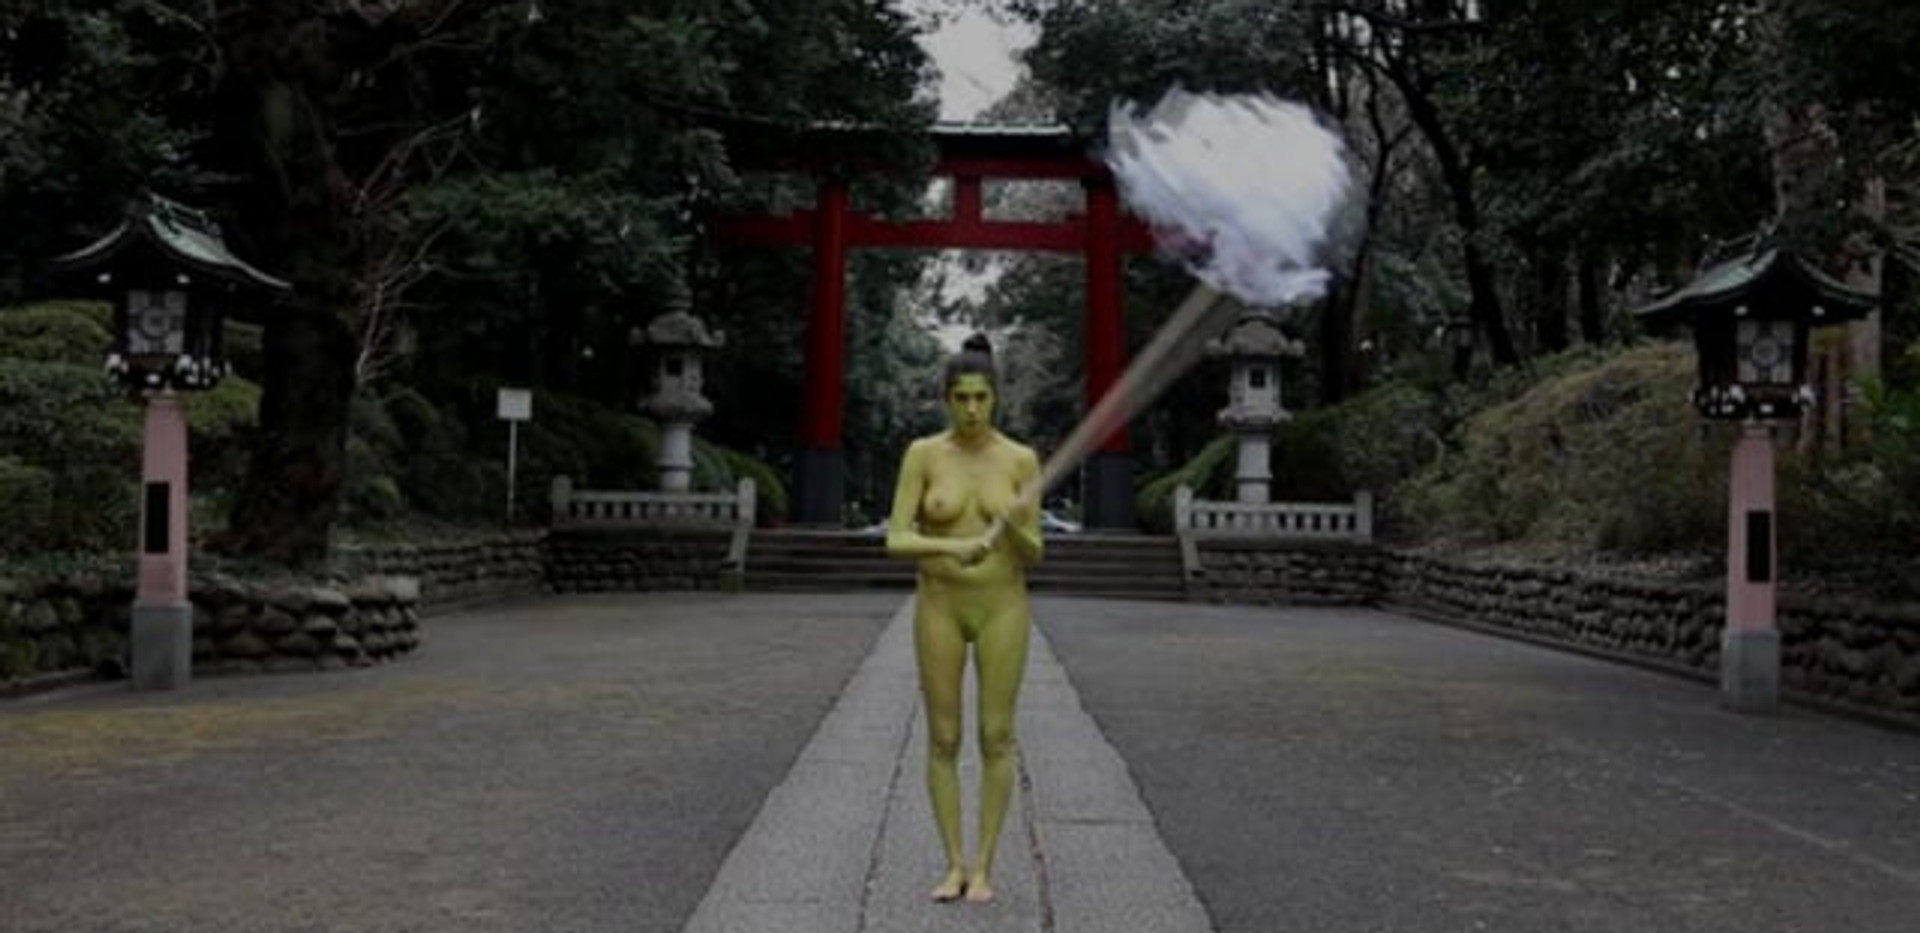 Shinto Action - Japan 2012 - Video of performance HD Video 4:11 - Edition of 5 + 1EA